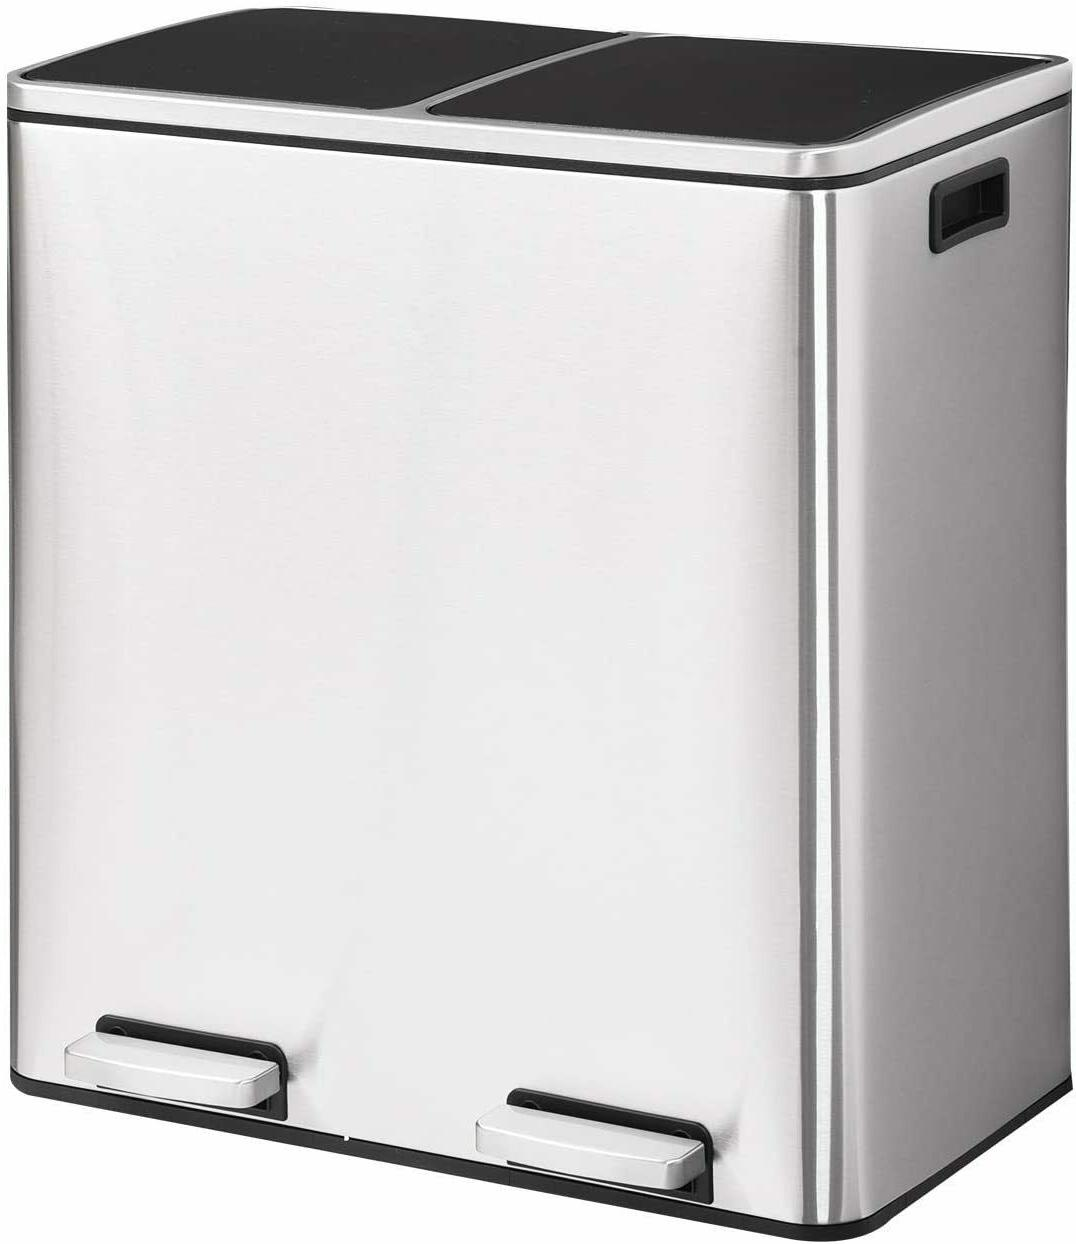 New Double barrel Stainless steel trash can with lid Room, Kitchen, Office